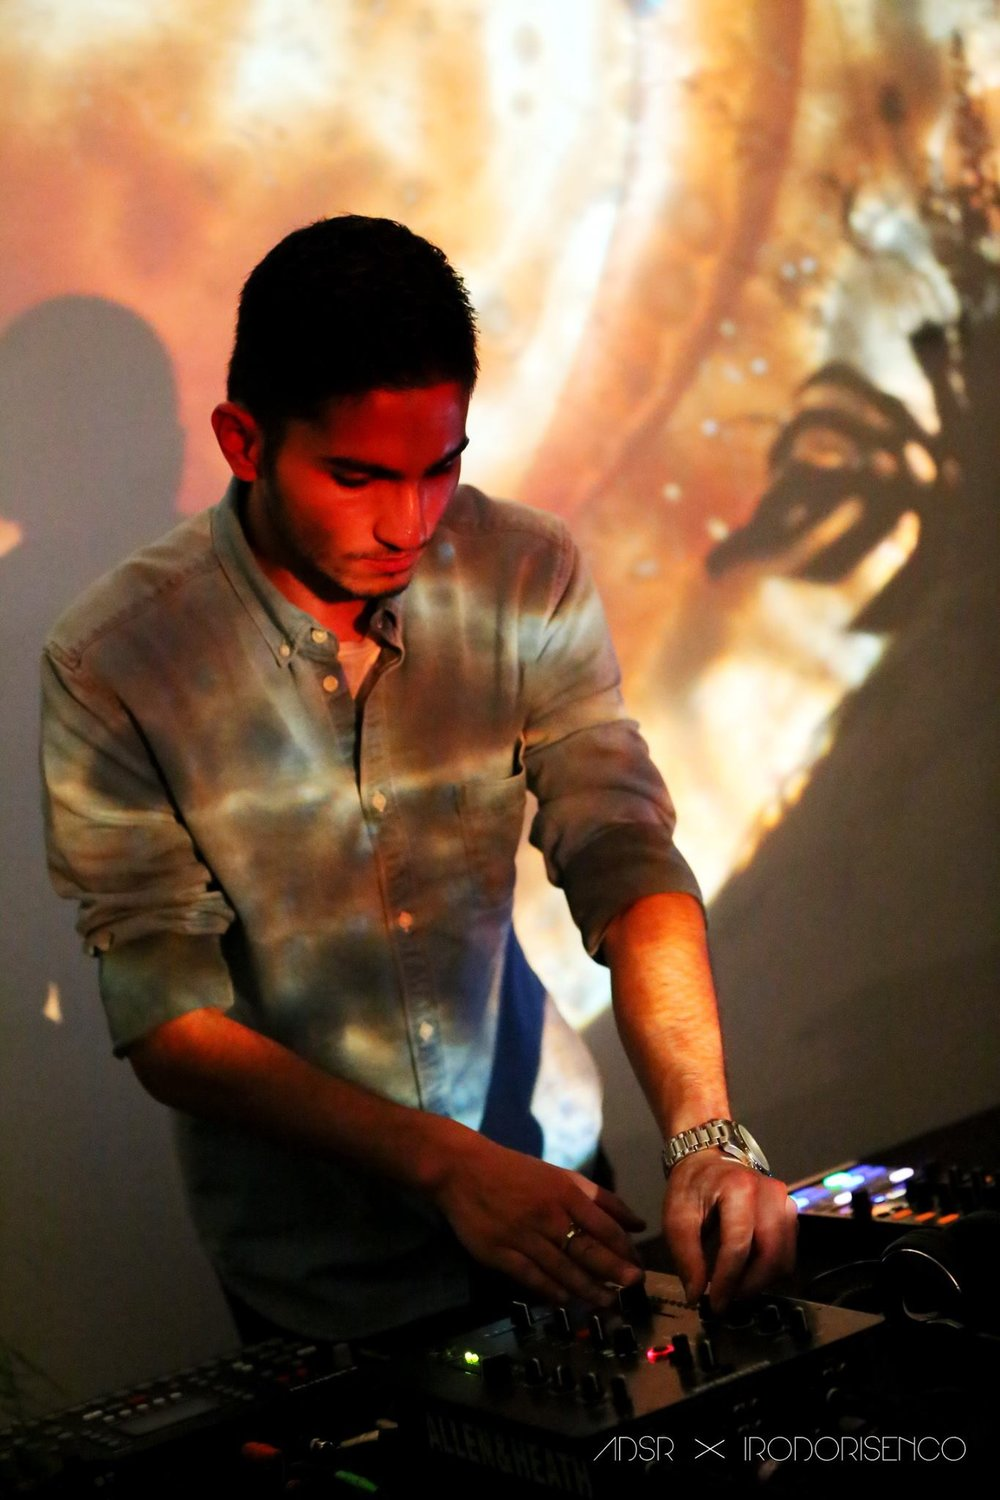 ADSR Collective Label Artist Shreshth Singh, aka Lumiere, from India and based in Vancouver BC, Canada.